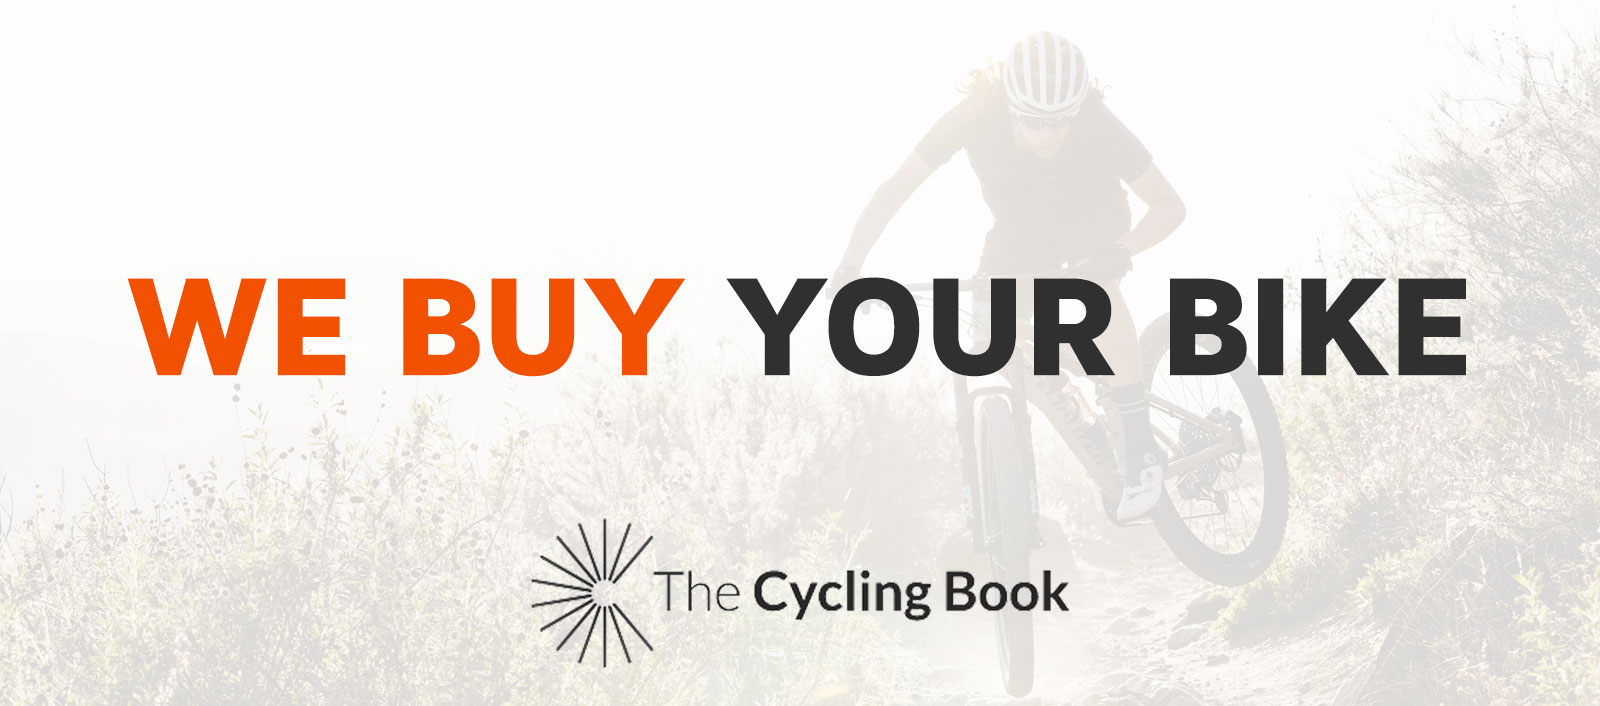 Cycling Book - We buy your bike Quilicot